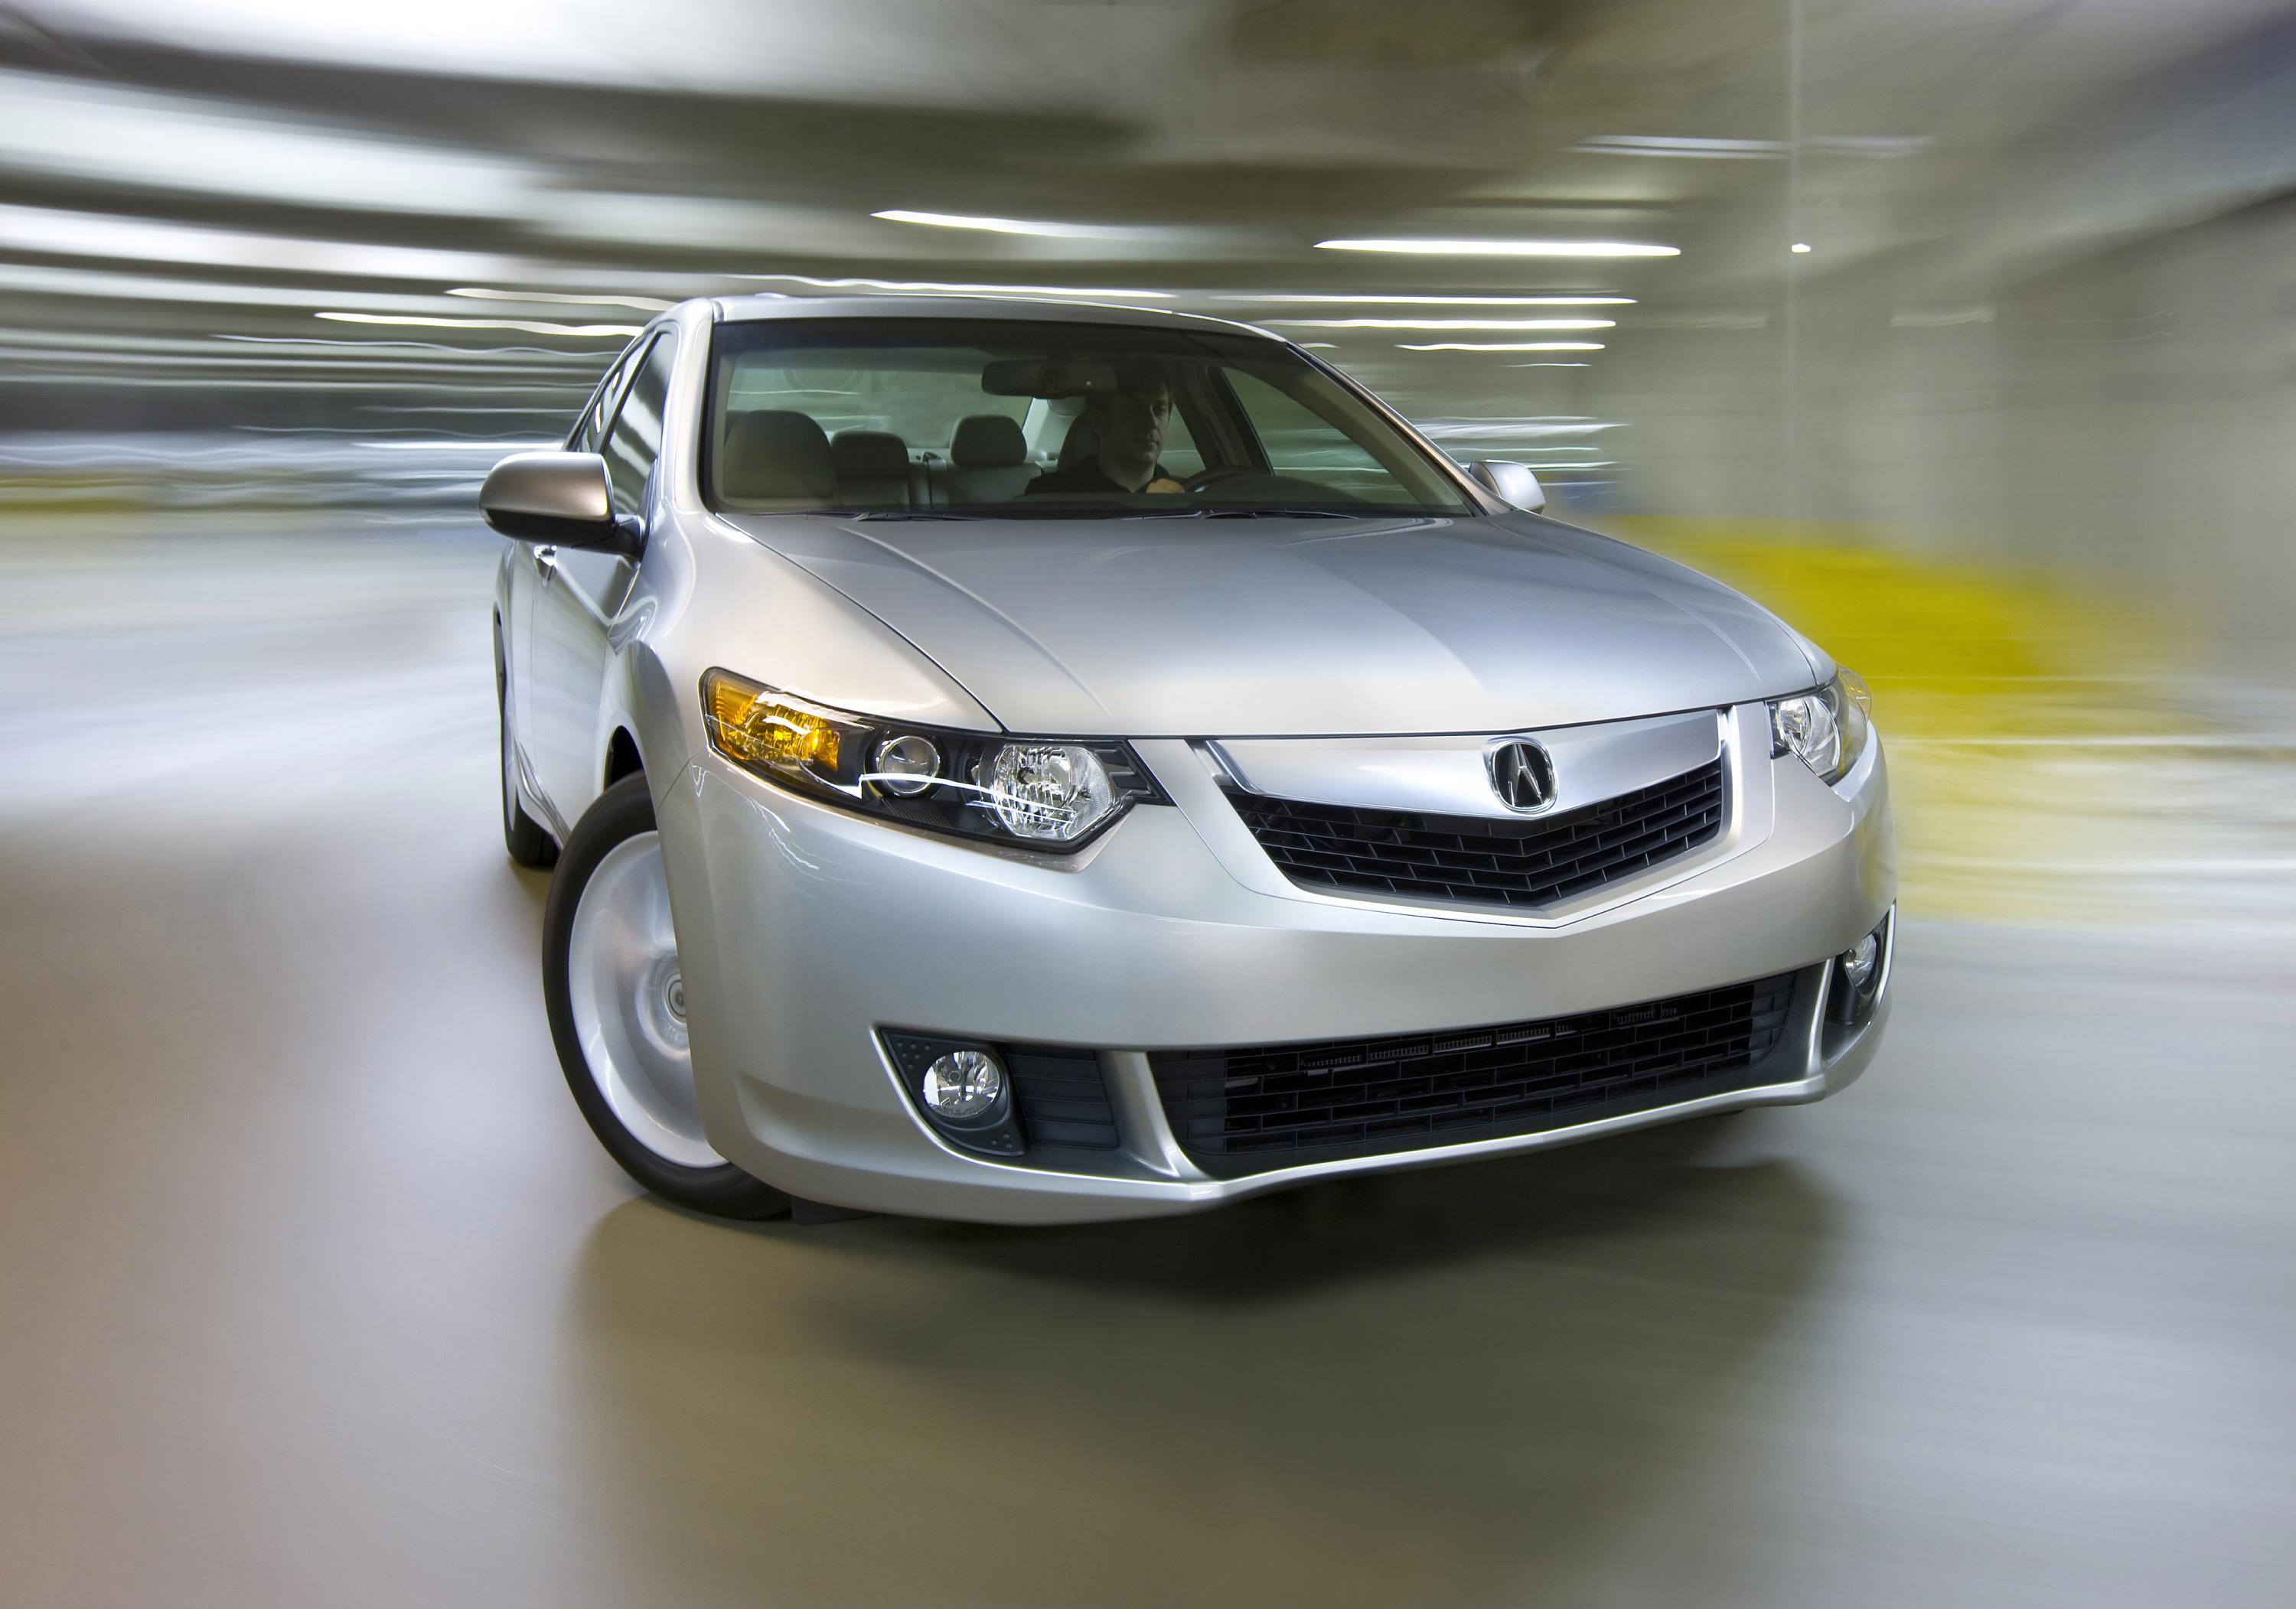 acura tsx news and reviews top speed rh topspeed com 2009 Acura TSX Specs Used 2009 Acura